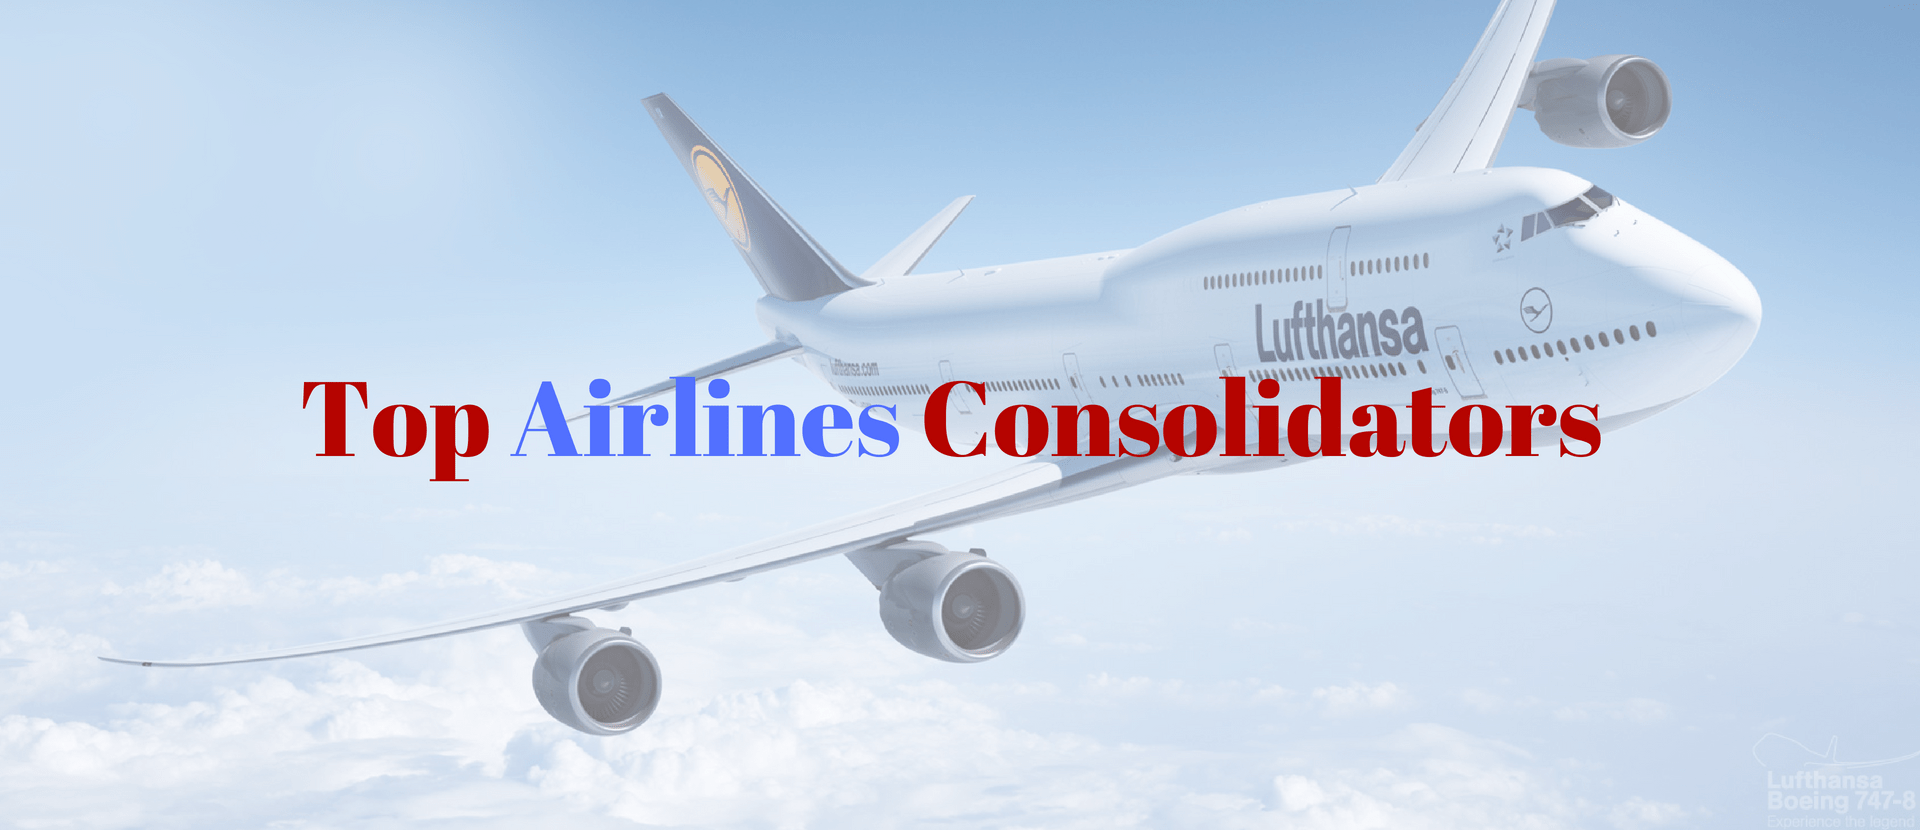 Standard Travel Vs Air Travel Consolidator: 7 Major Differences